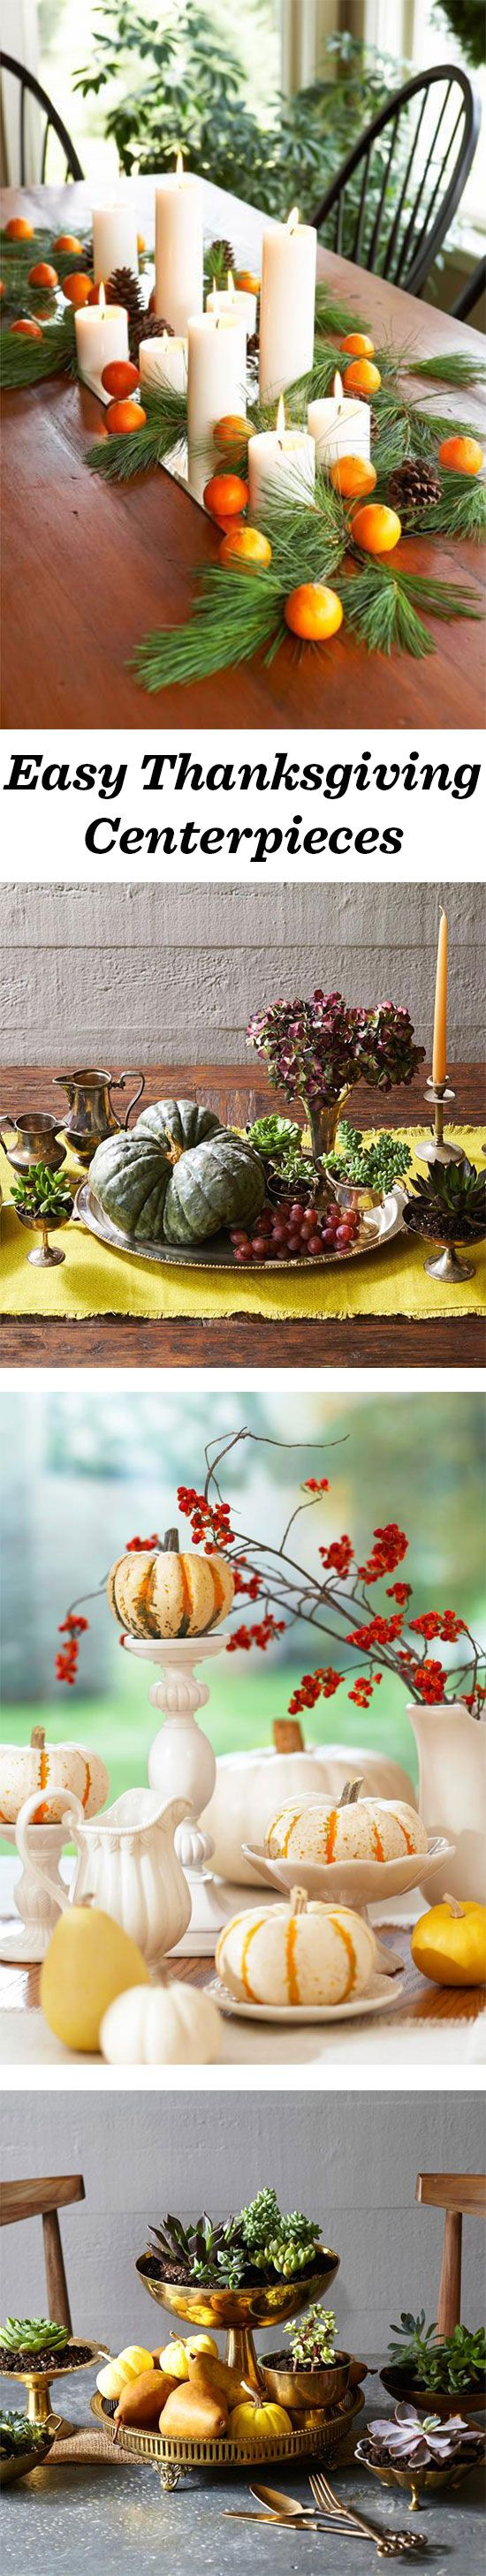 These easy Thanksgiving centerpieces will brighten up